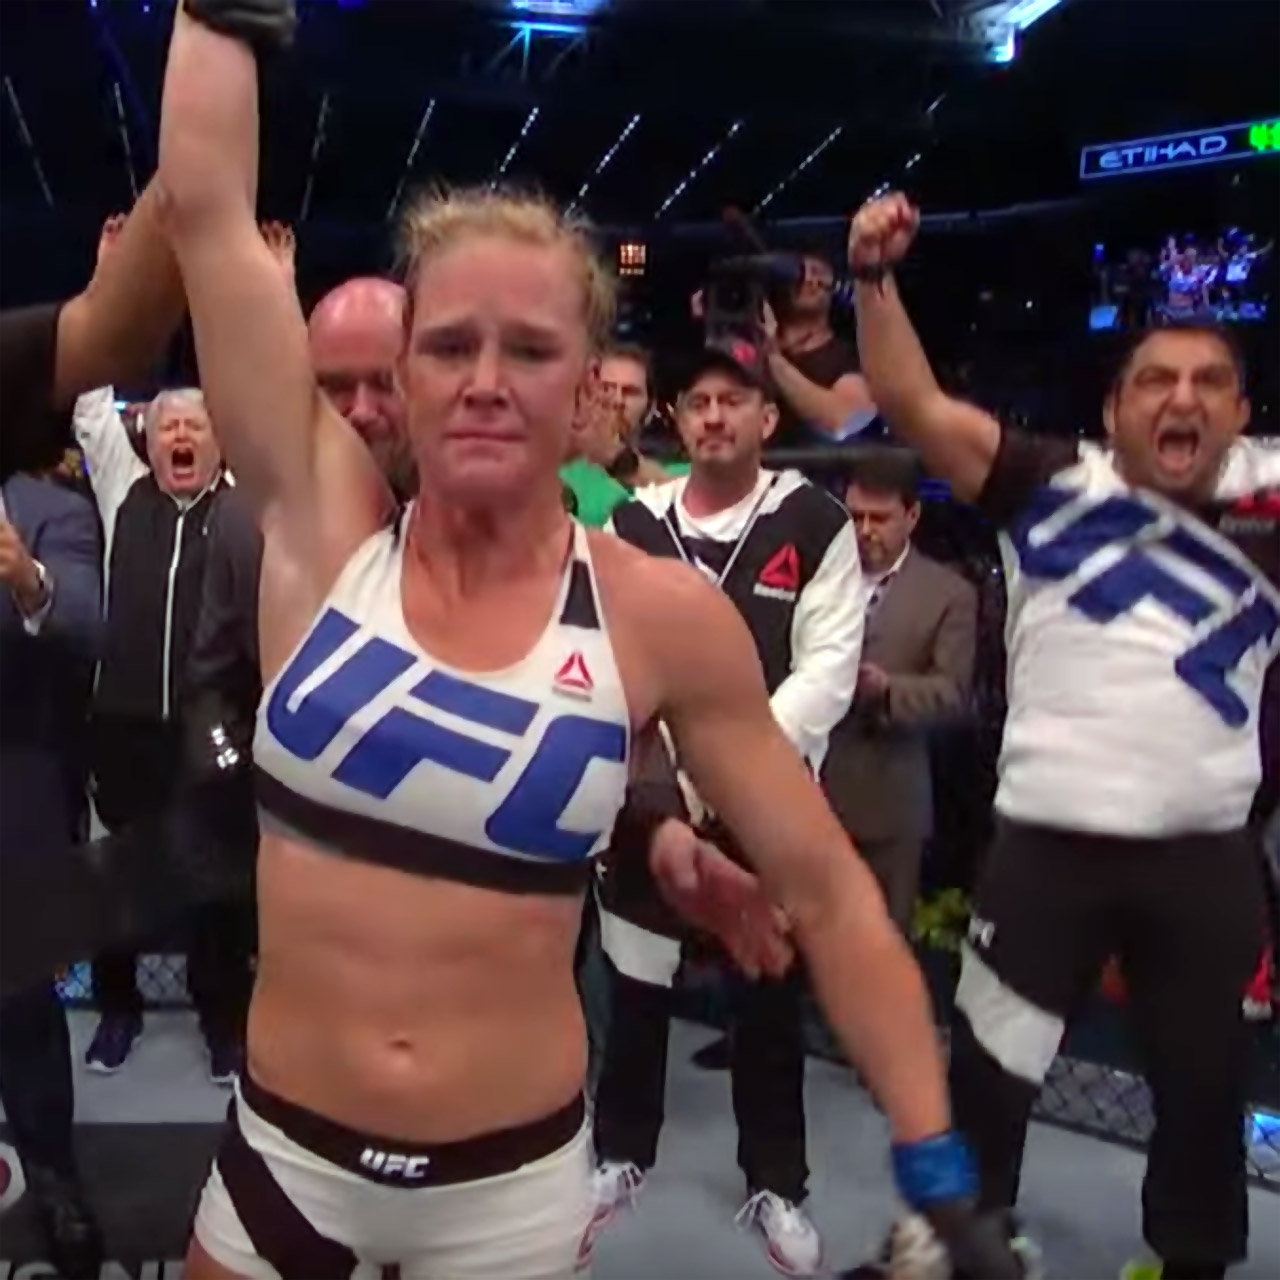 Holy Holm prevails over Ronda Rousey at UFC 193